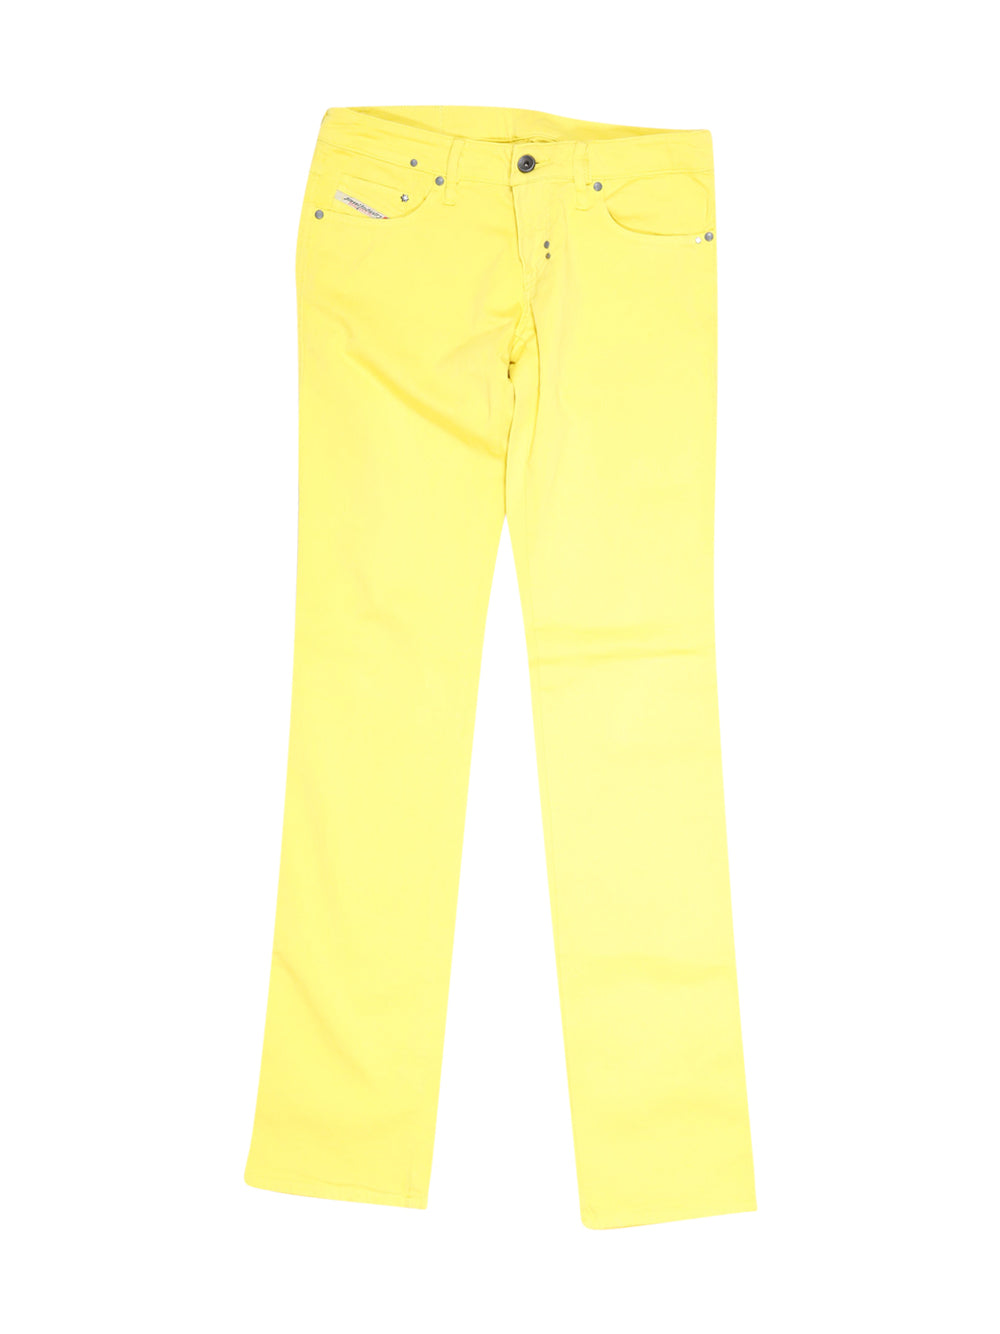 Front photo of Preloved Diesel Yellow Woman's trousers - size 8/S